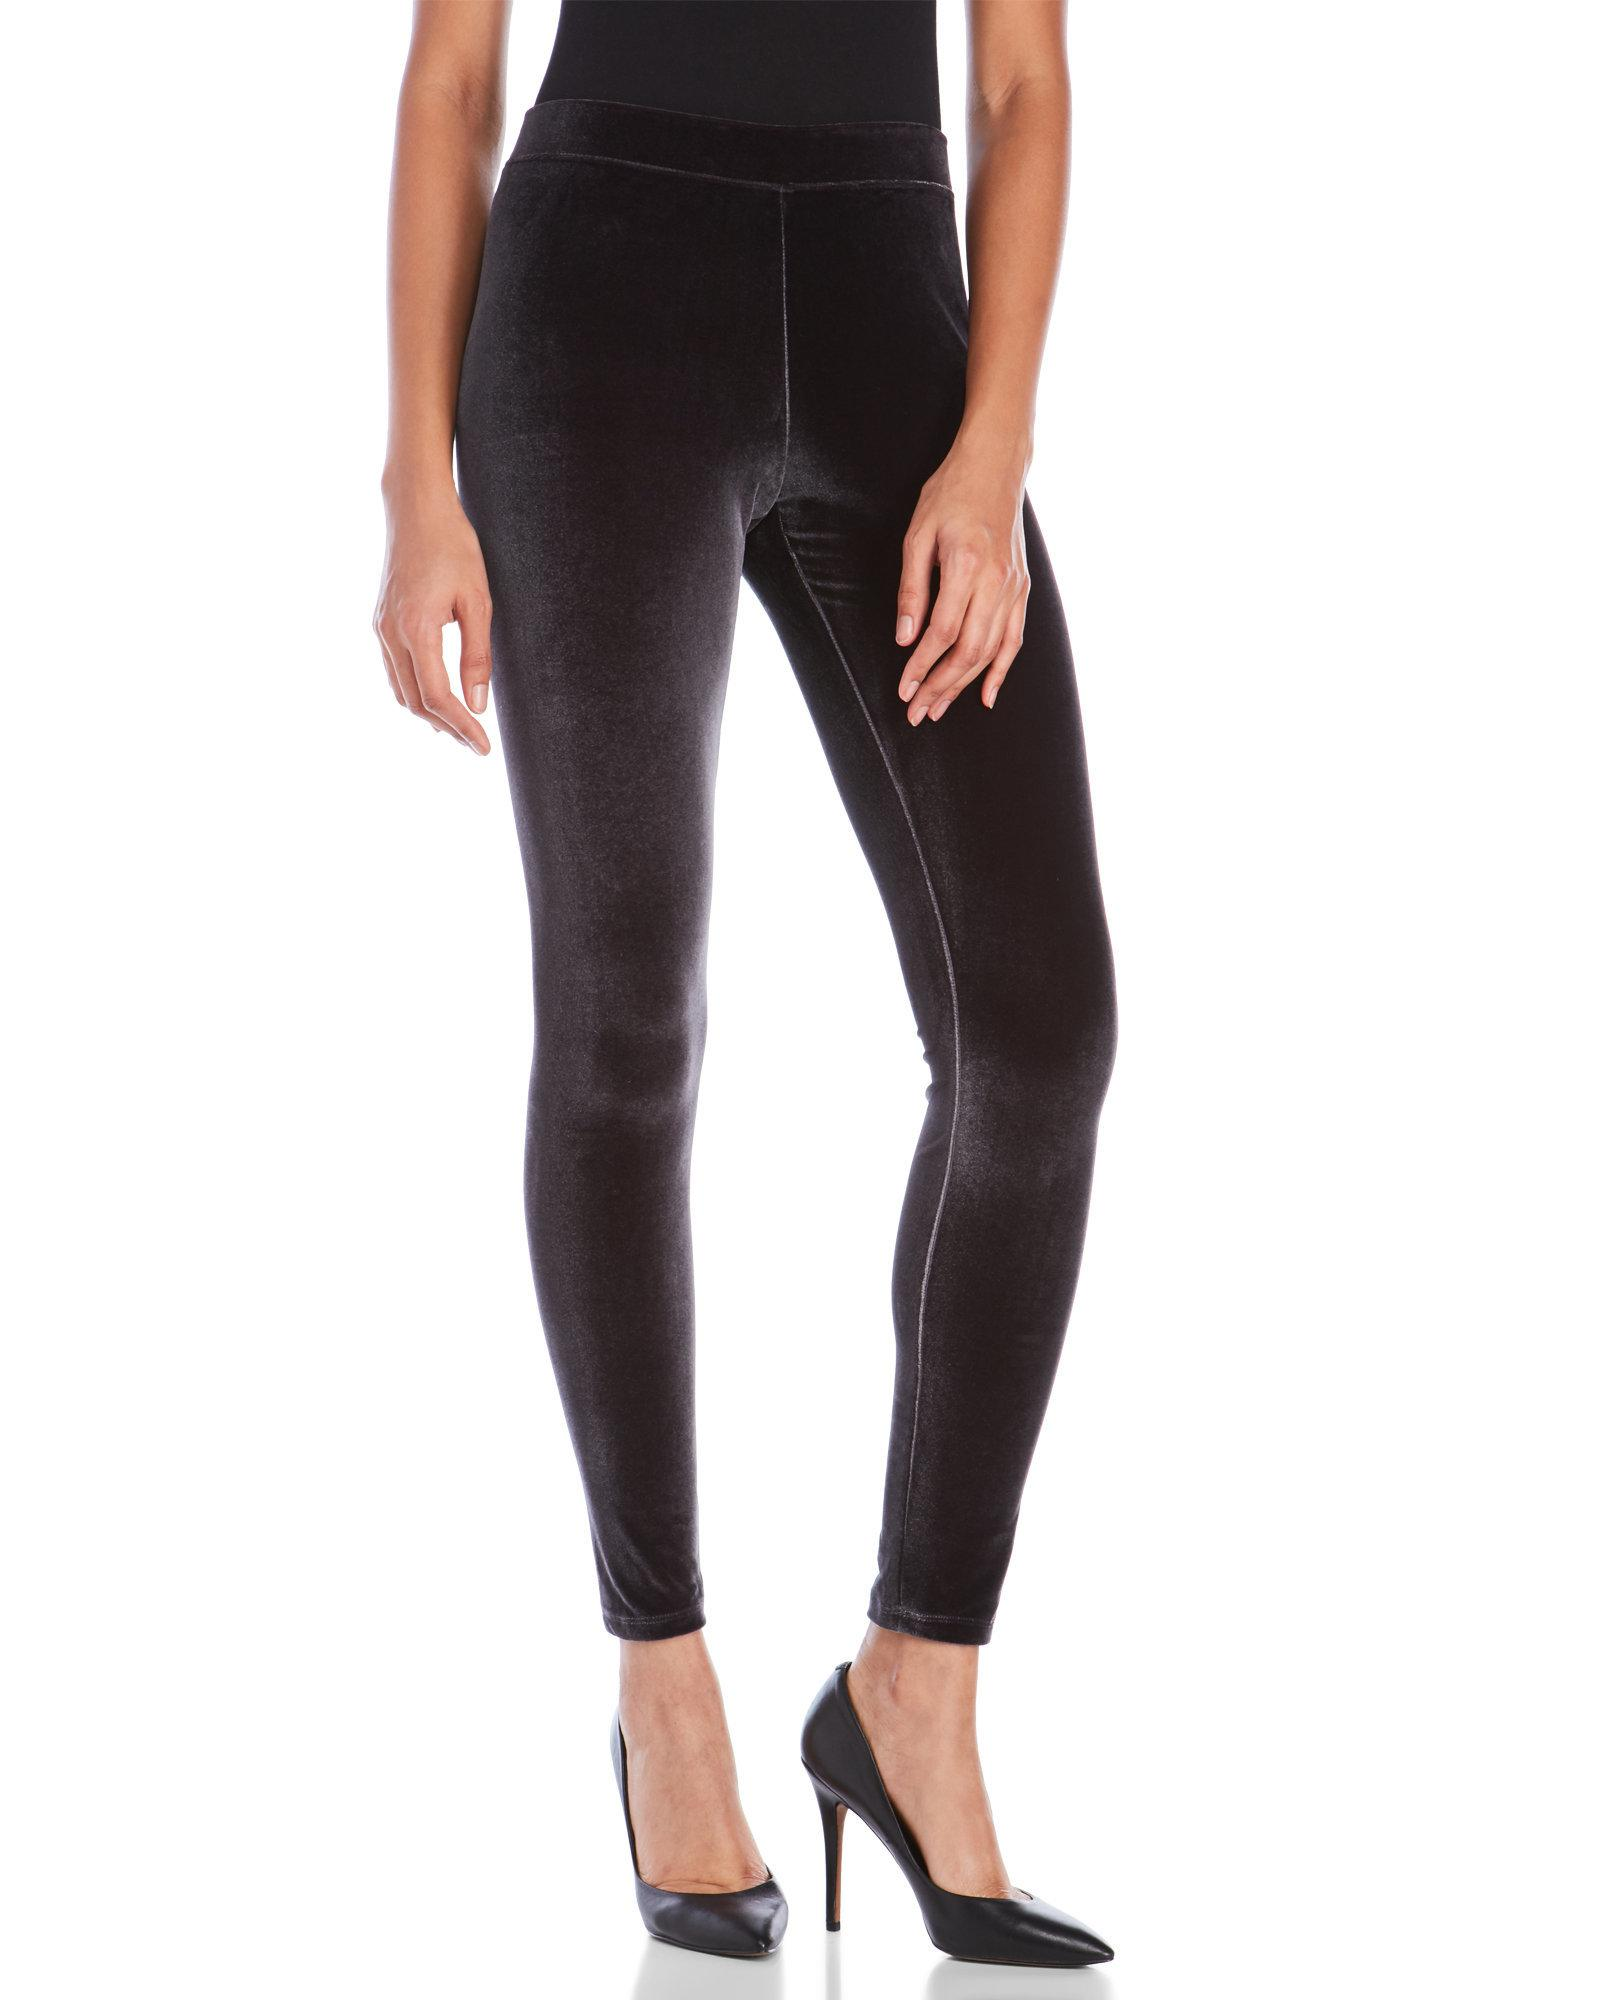 fde4b24861c82 Hue Velvet Leggings in Black - Lyst